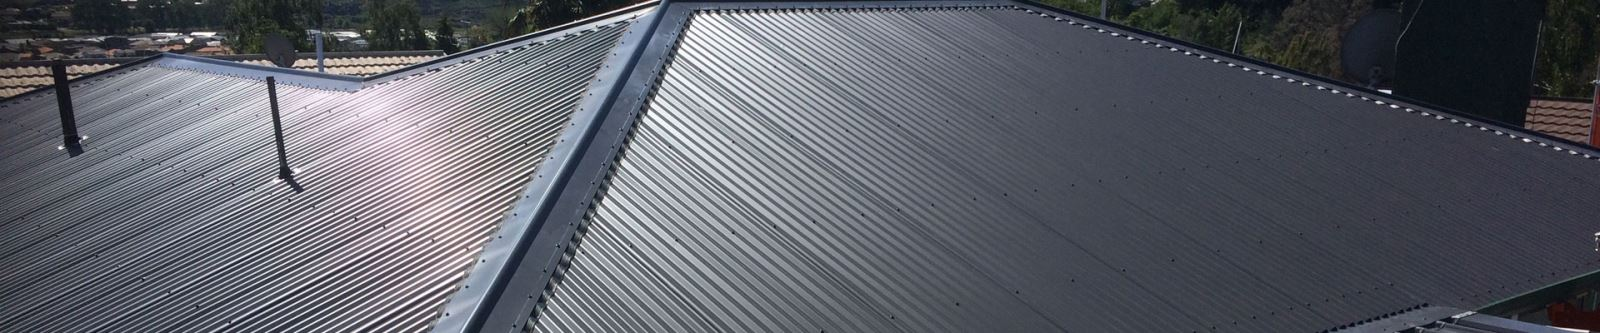 Custom Roof - Roofing Services  Re-Roofing Tauranga - Bay of Plenty